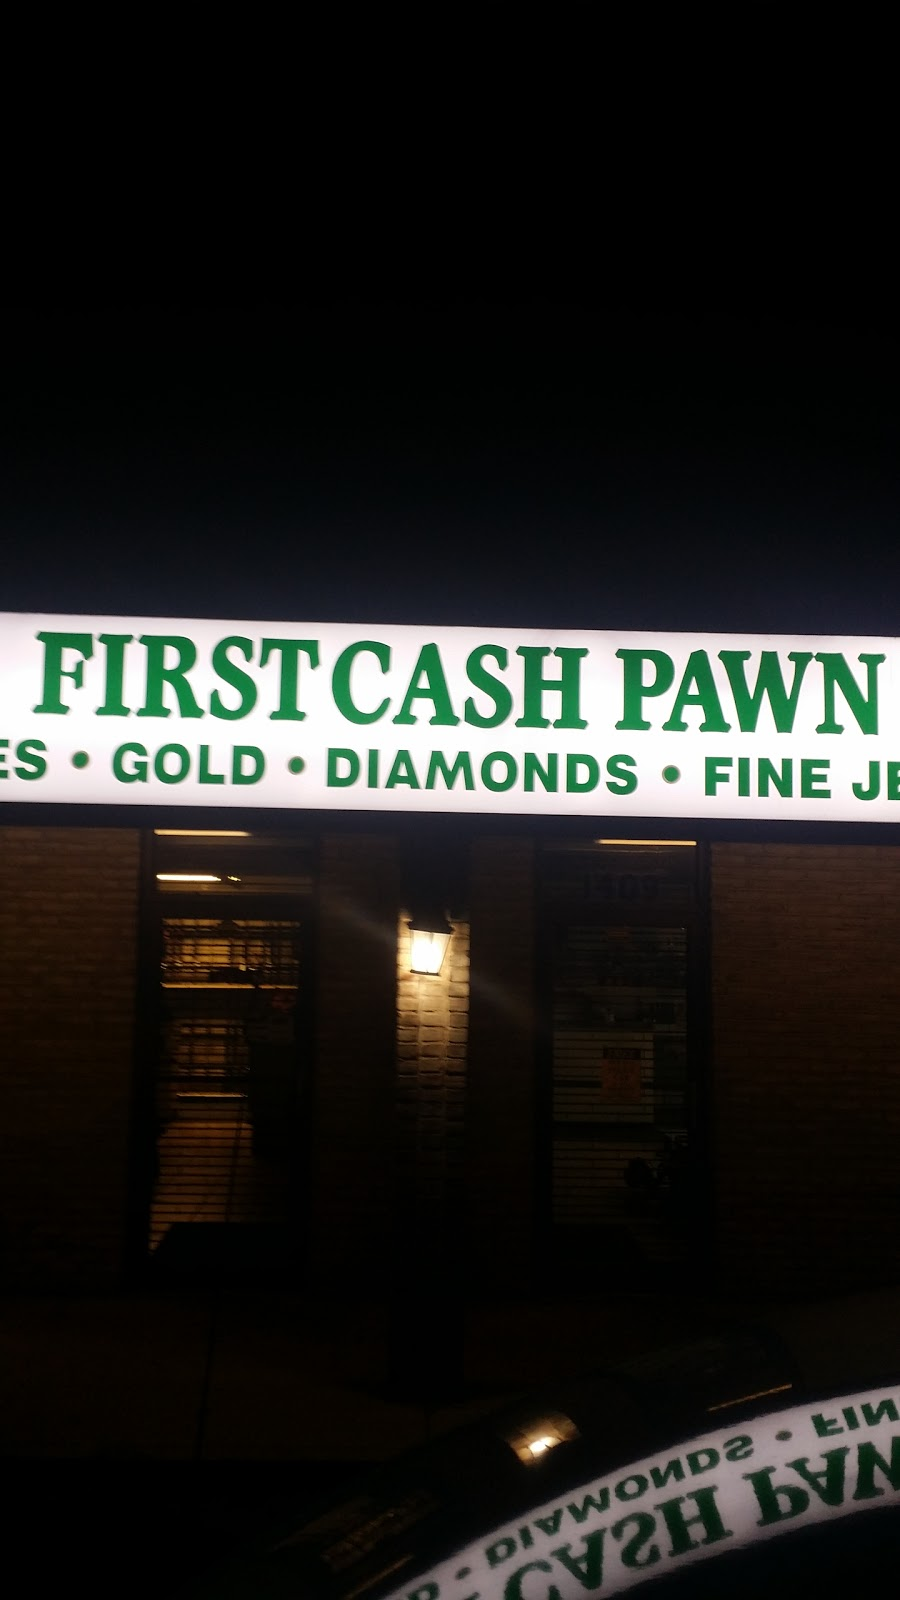 Pawn Shop Gaithersburg Md : gaithersburg, Famous, Pawnbrokers, Frederick, Patrick, Frederick,, 21702,